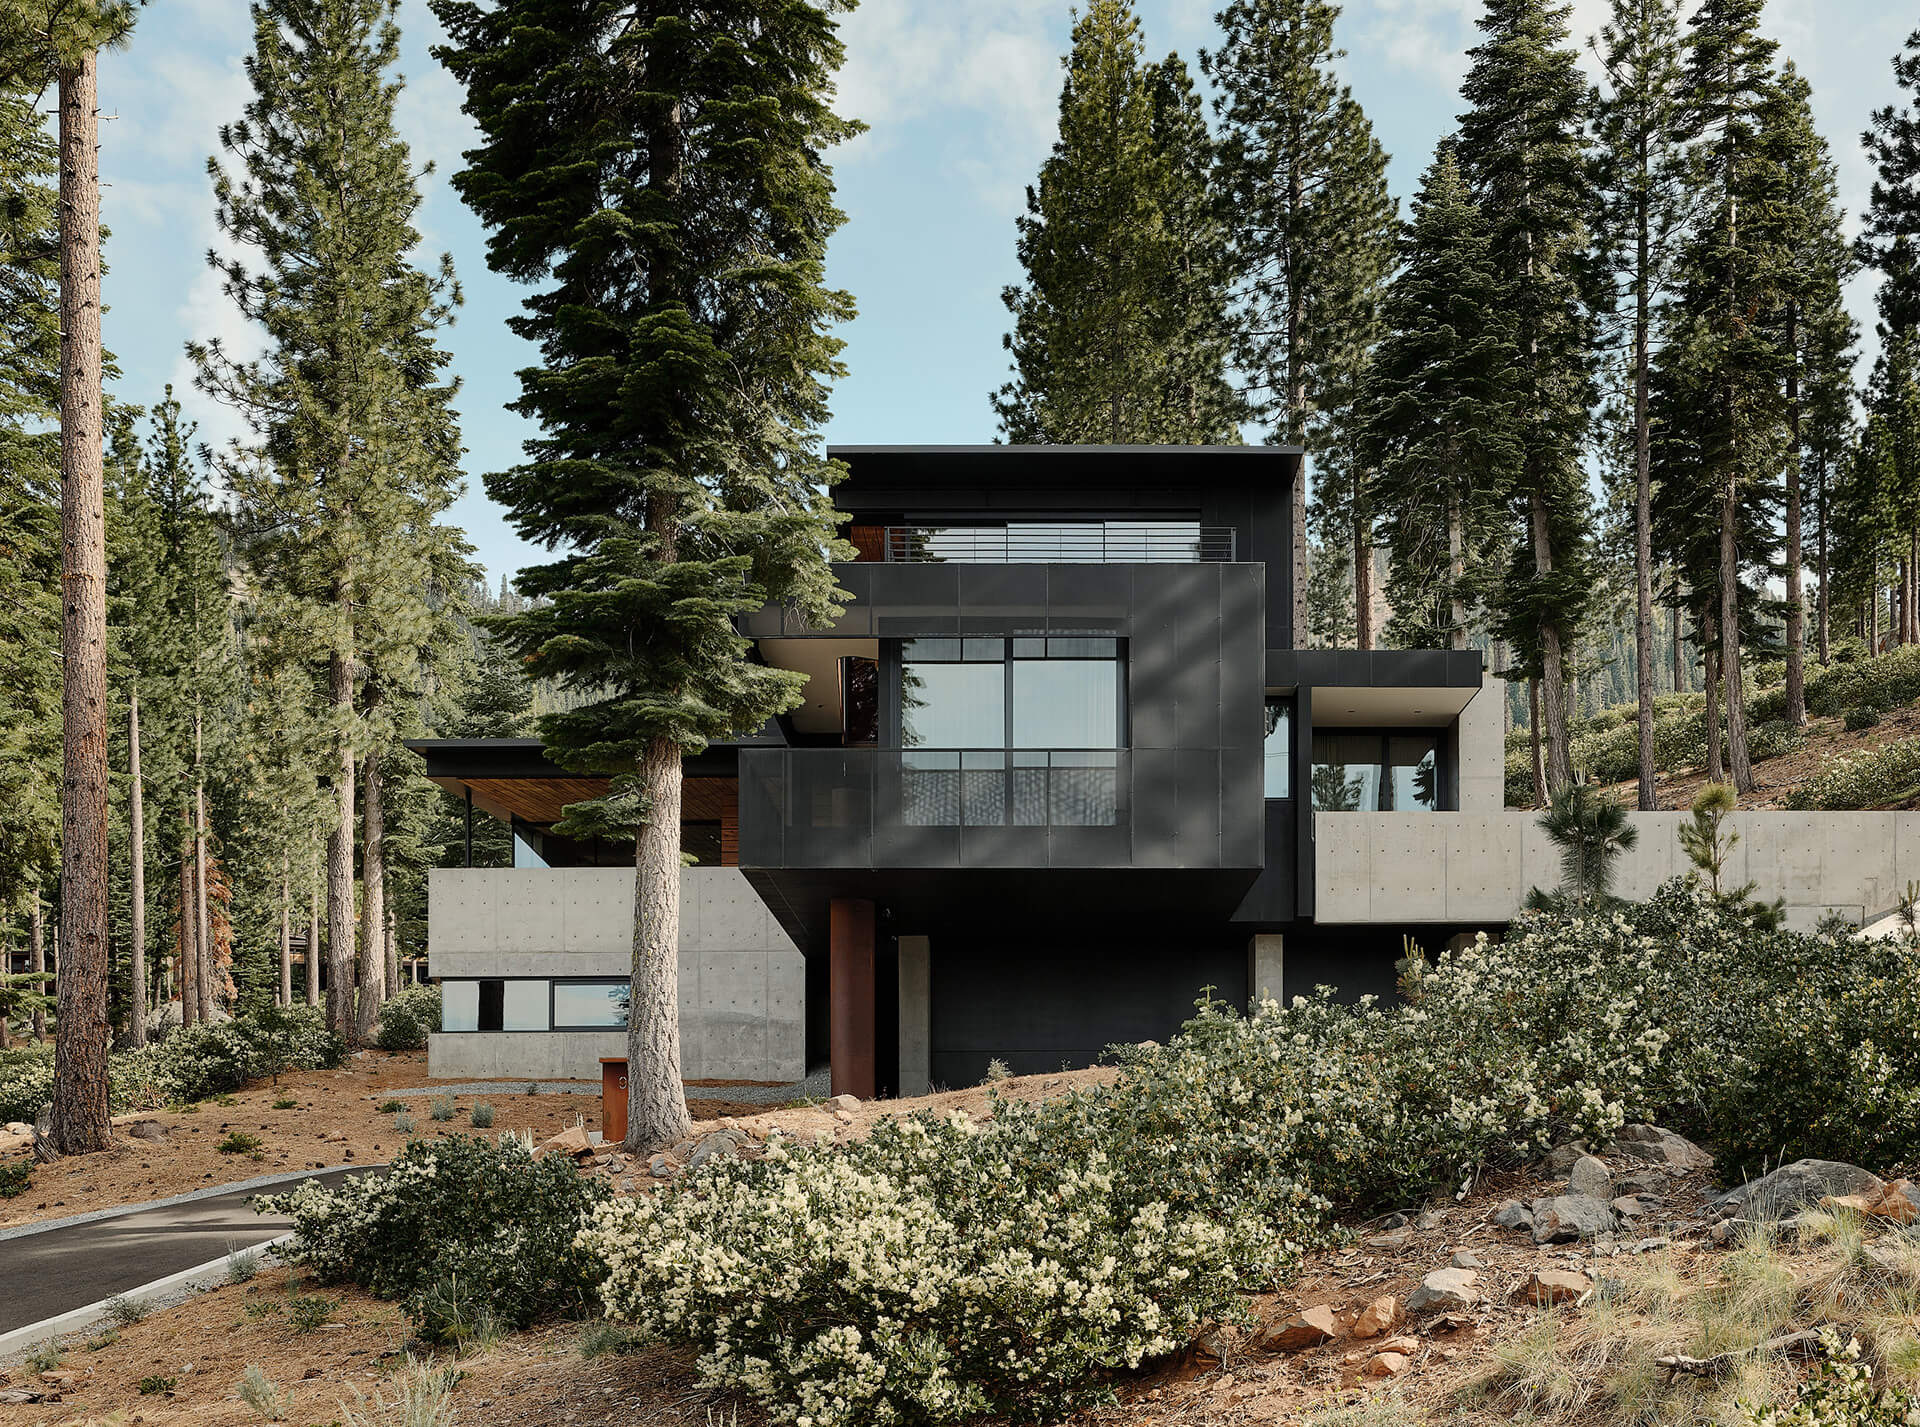 Stacked concrete cuboids and voids | Lookout House by Faulkner Architects | STIRworld